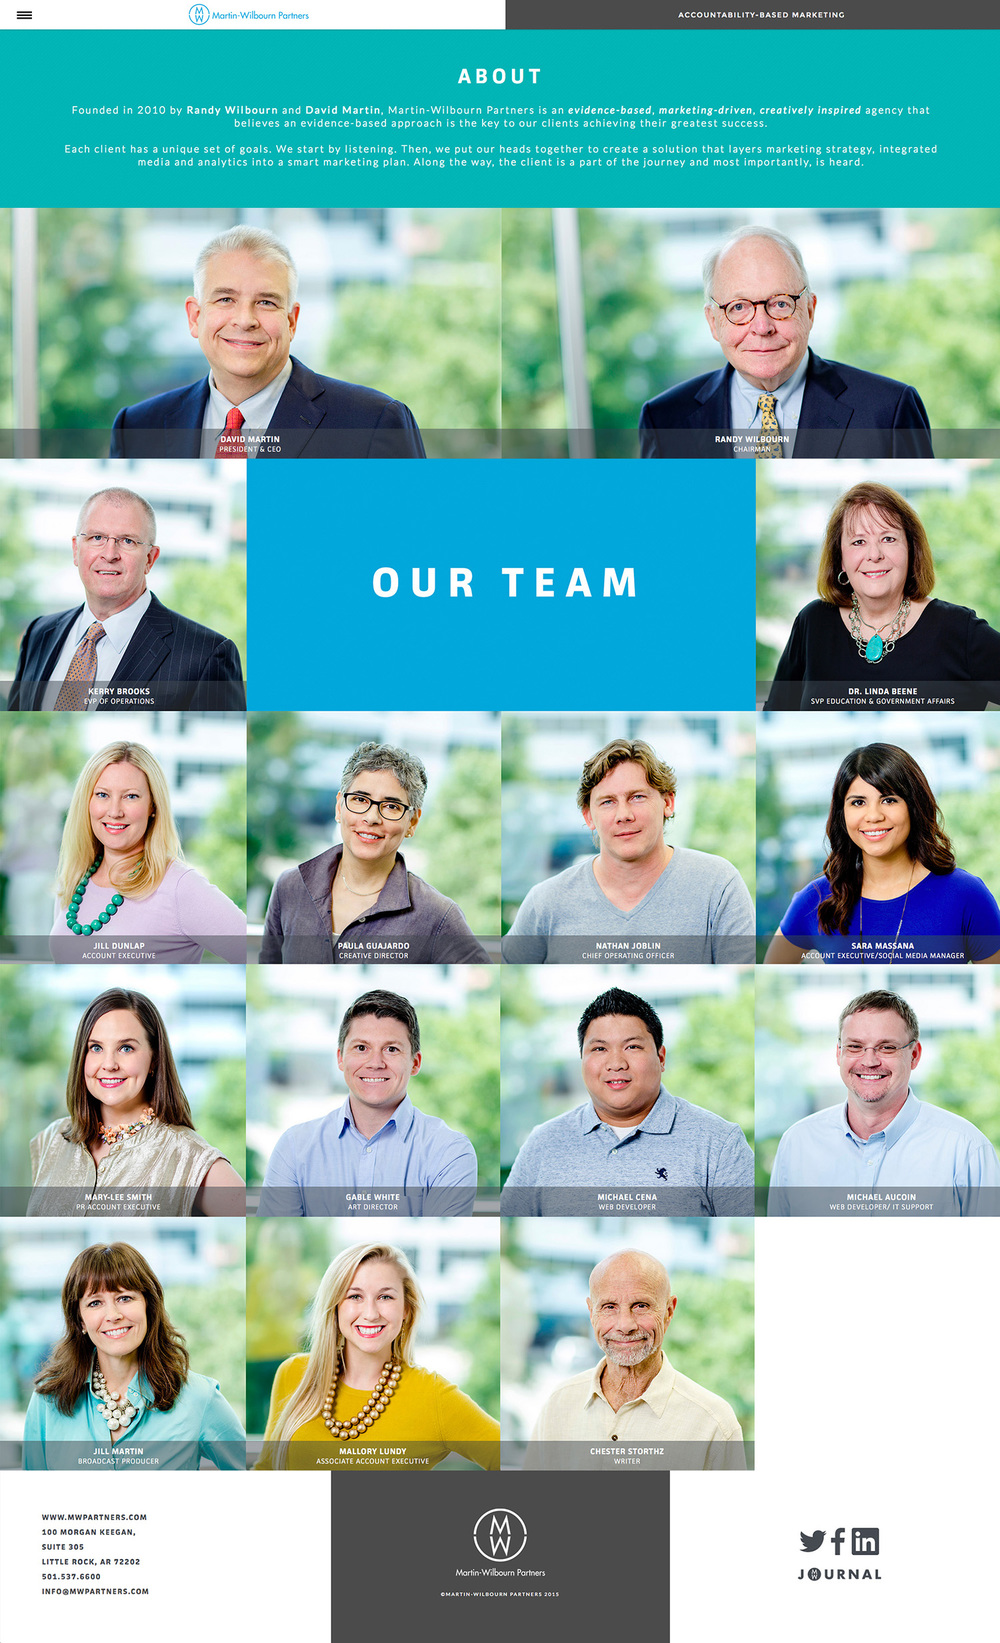 Meet the creative team at Martin-Wilbourn Partners.